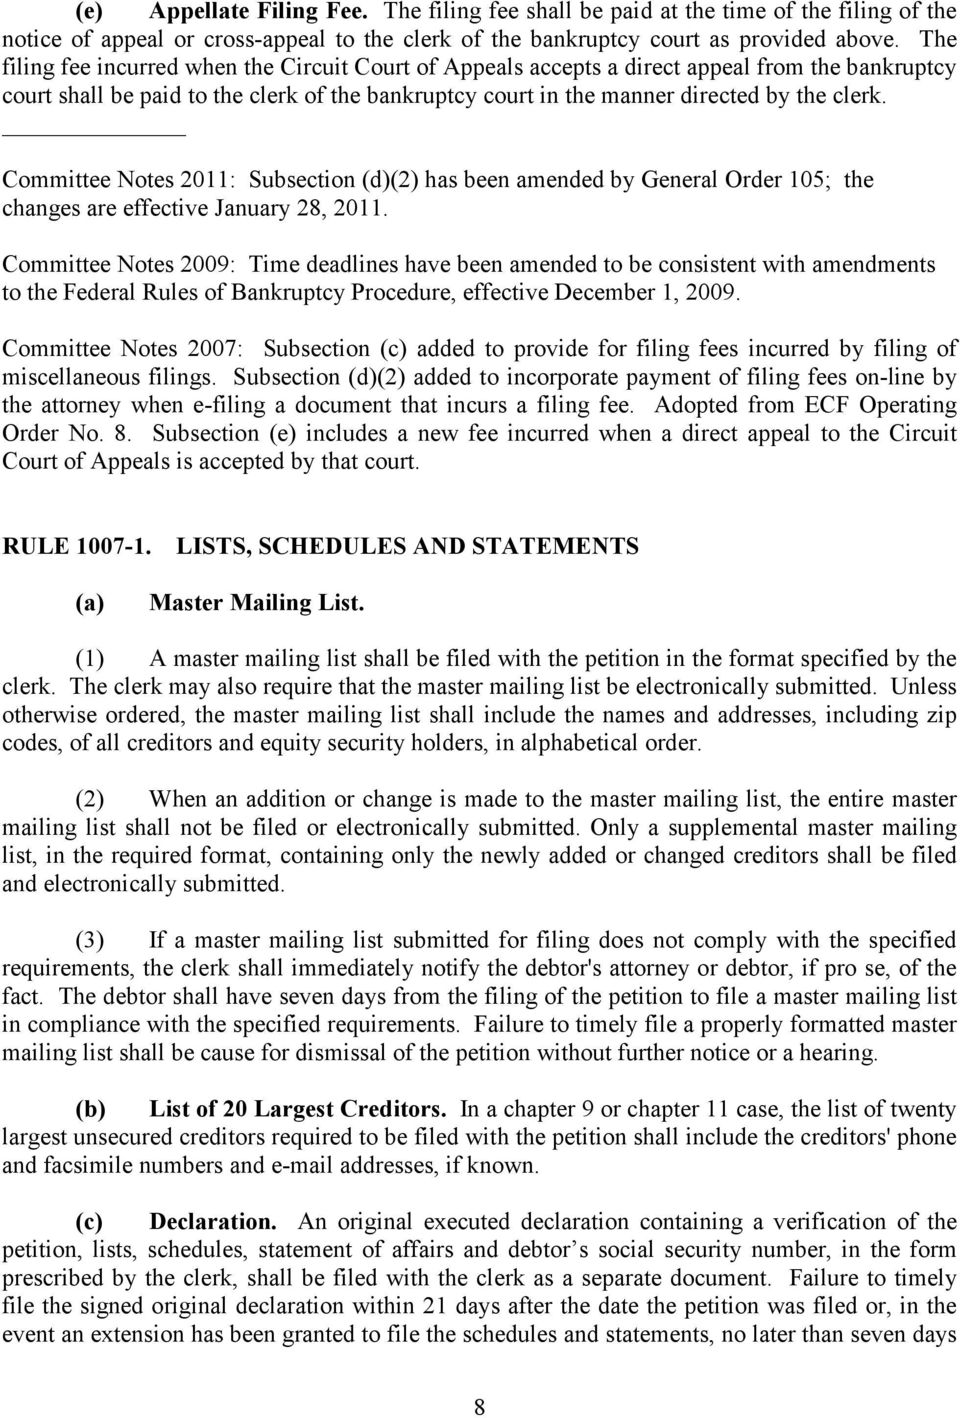 Committee Notes 2011: Subsection (d)(2) has been amended by General Order 105; the changes are effective January 28, 2011.